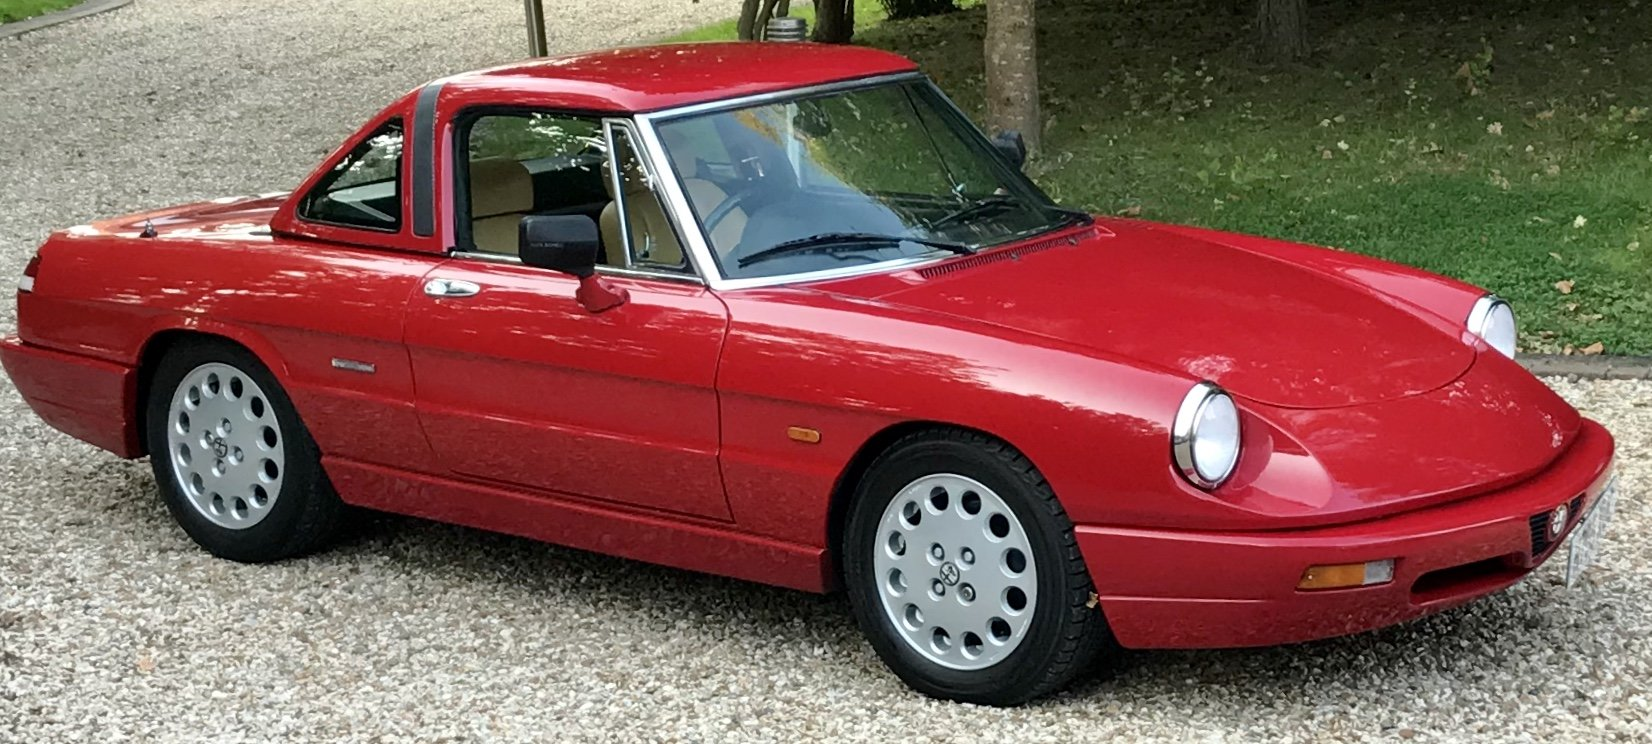 1990 Alfa Romeo Spider 2.0,  Stunning Car With Hard Top For Sale (picture 1 of 6)